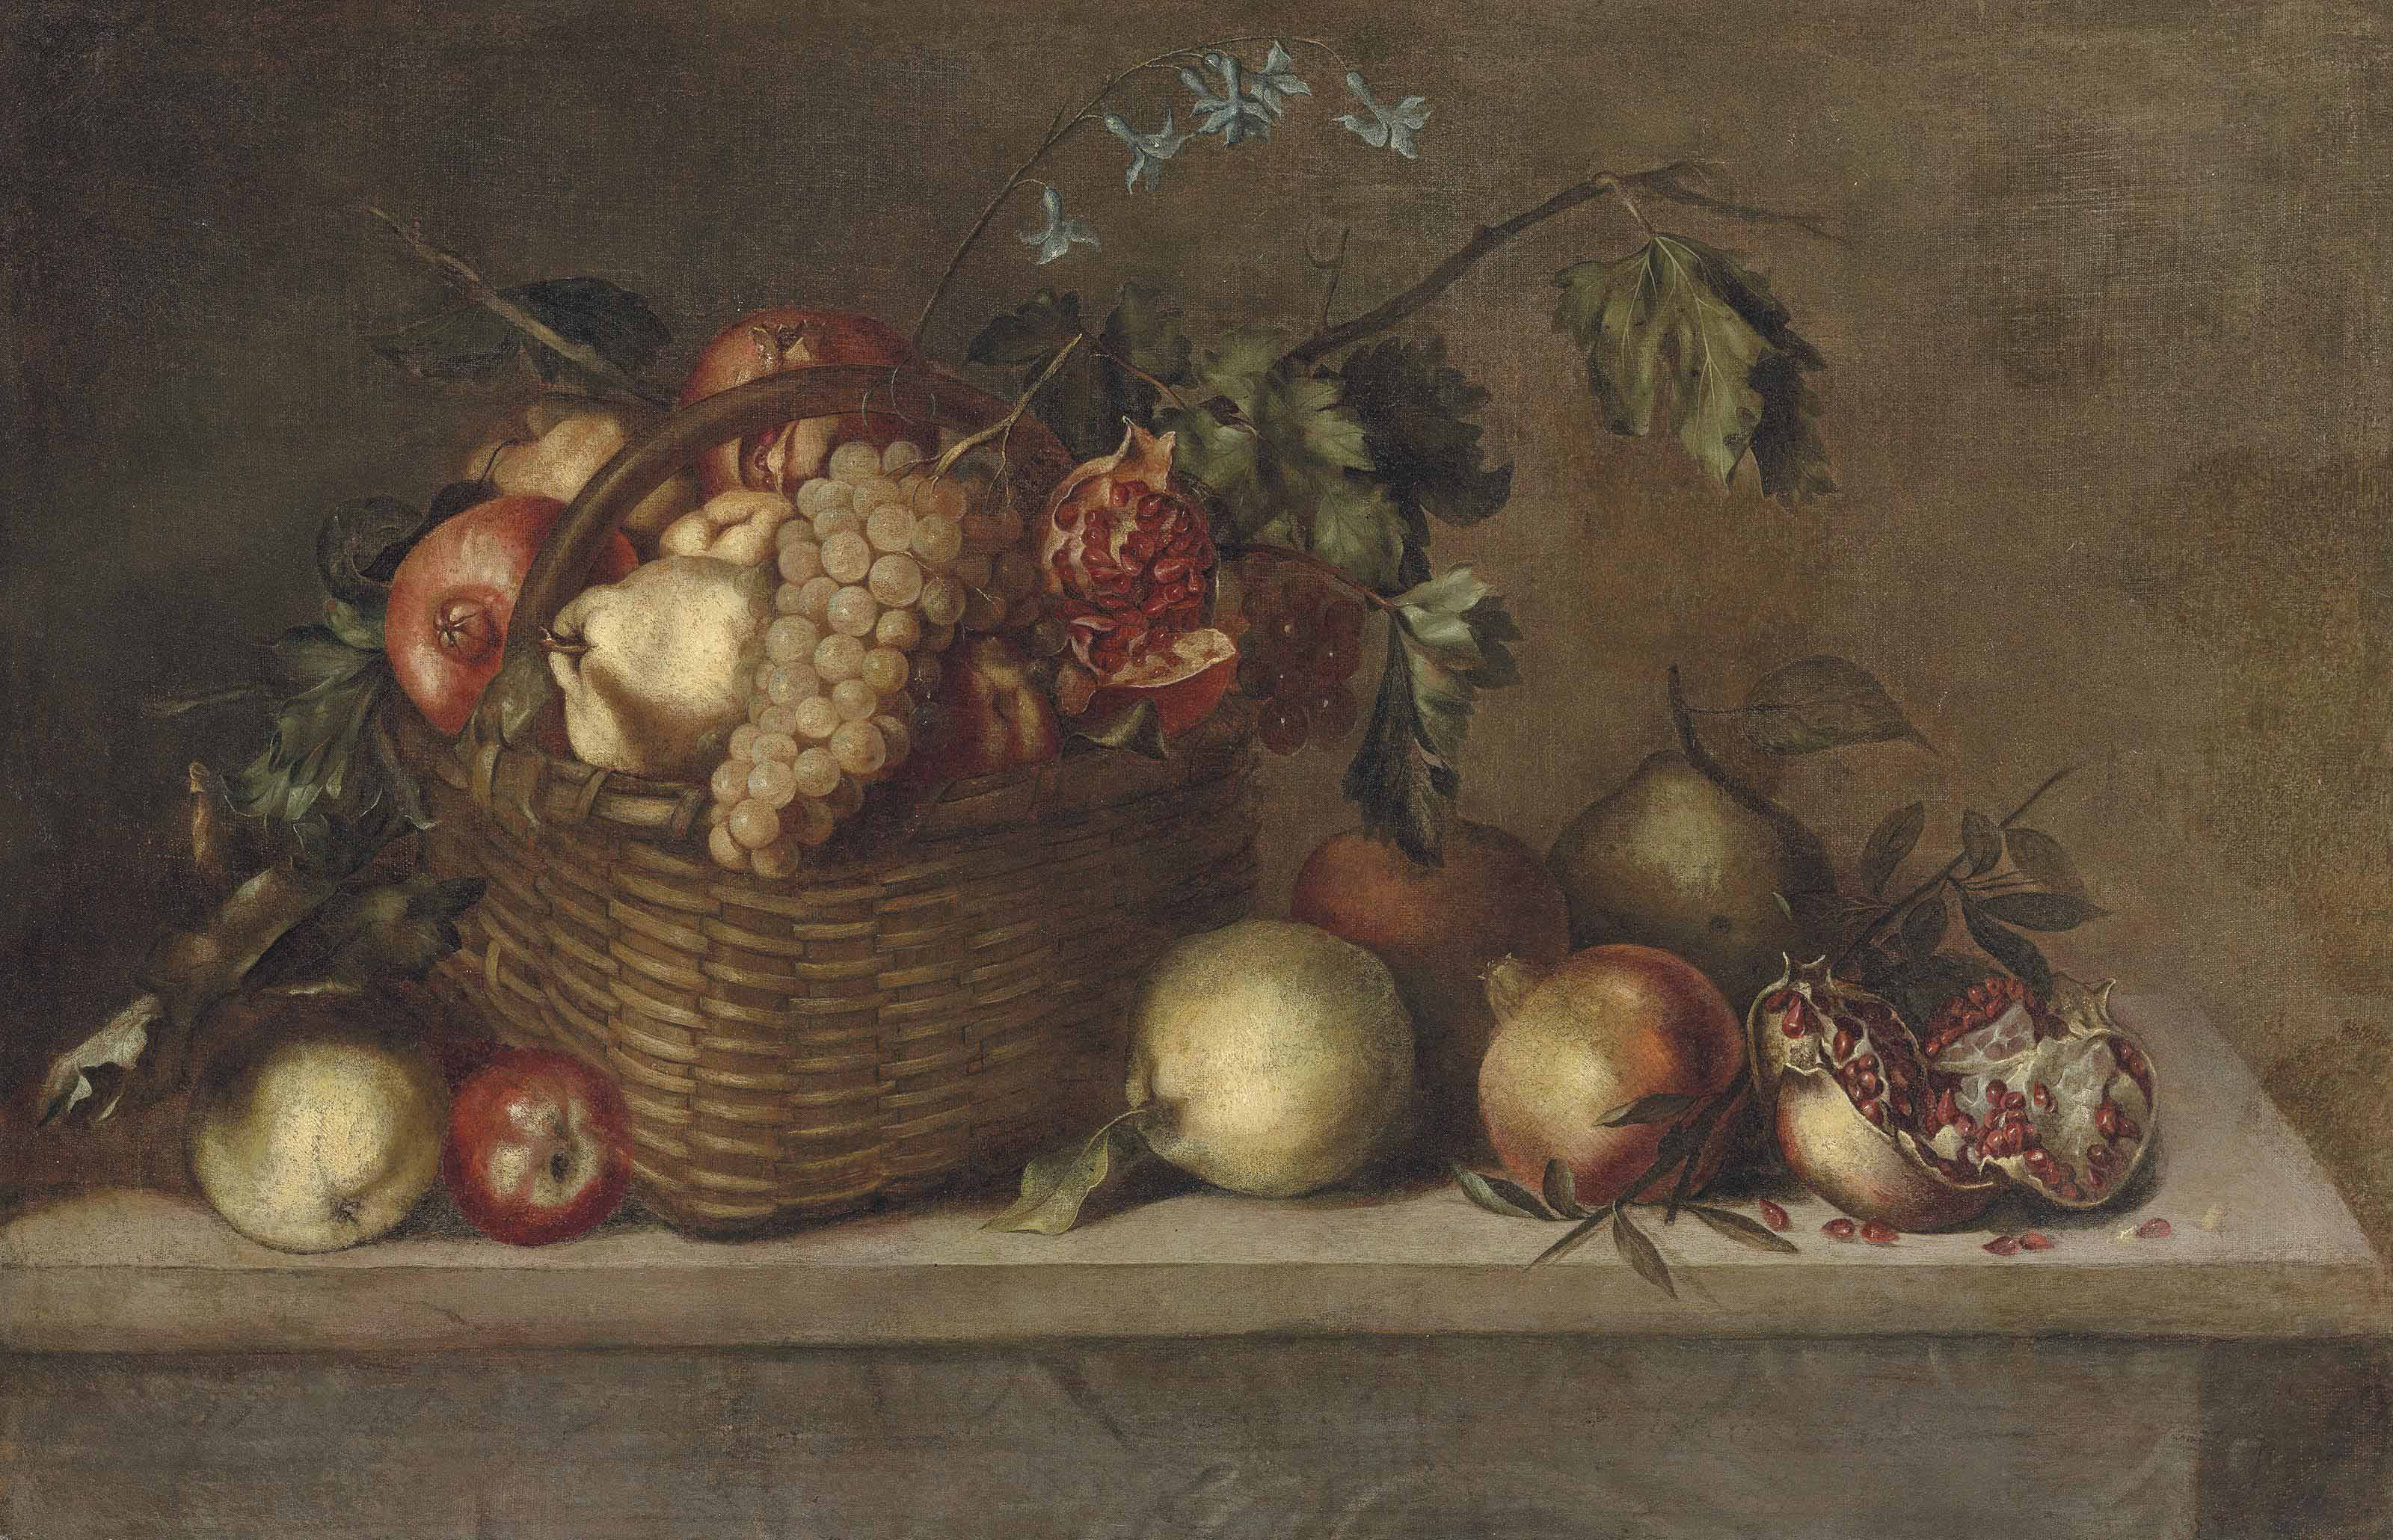 Pears, pomegranates and grapes in a basket and other fruit on a stone ledge